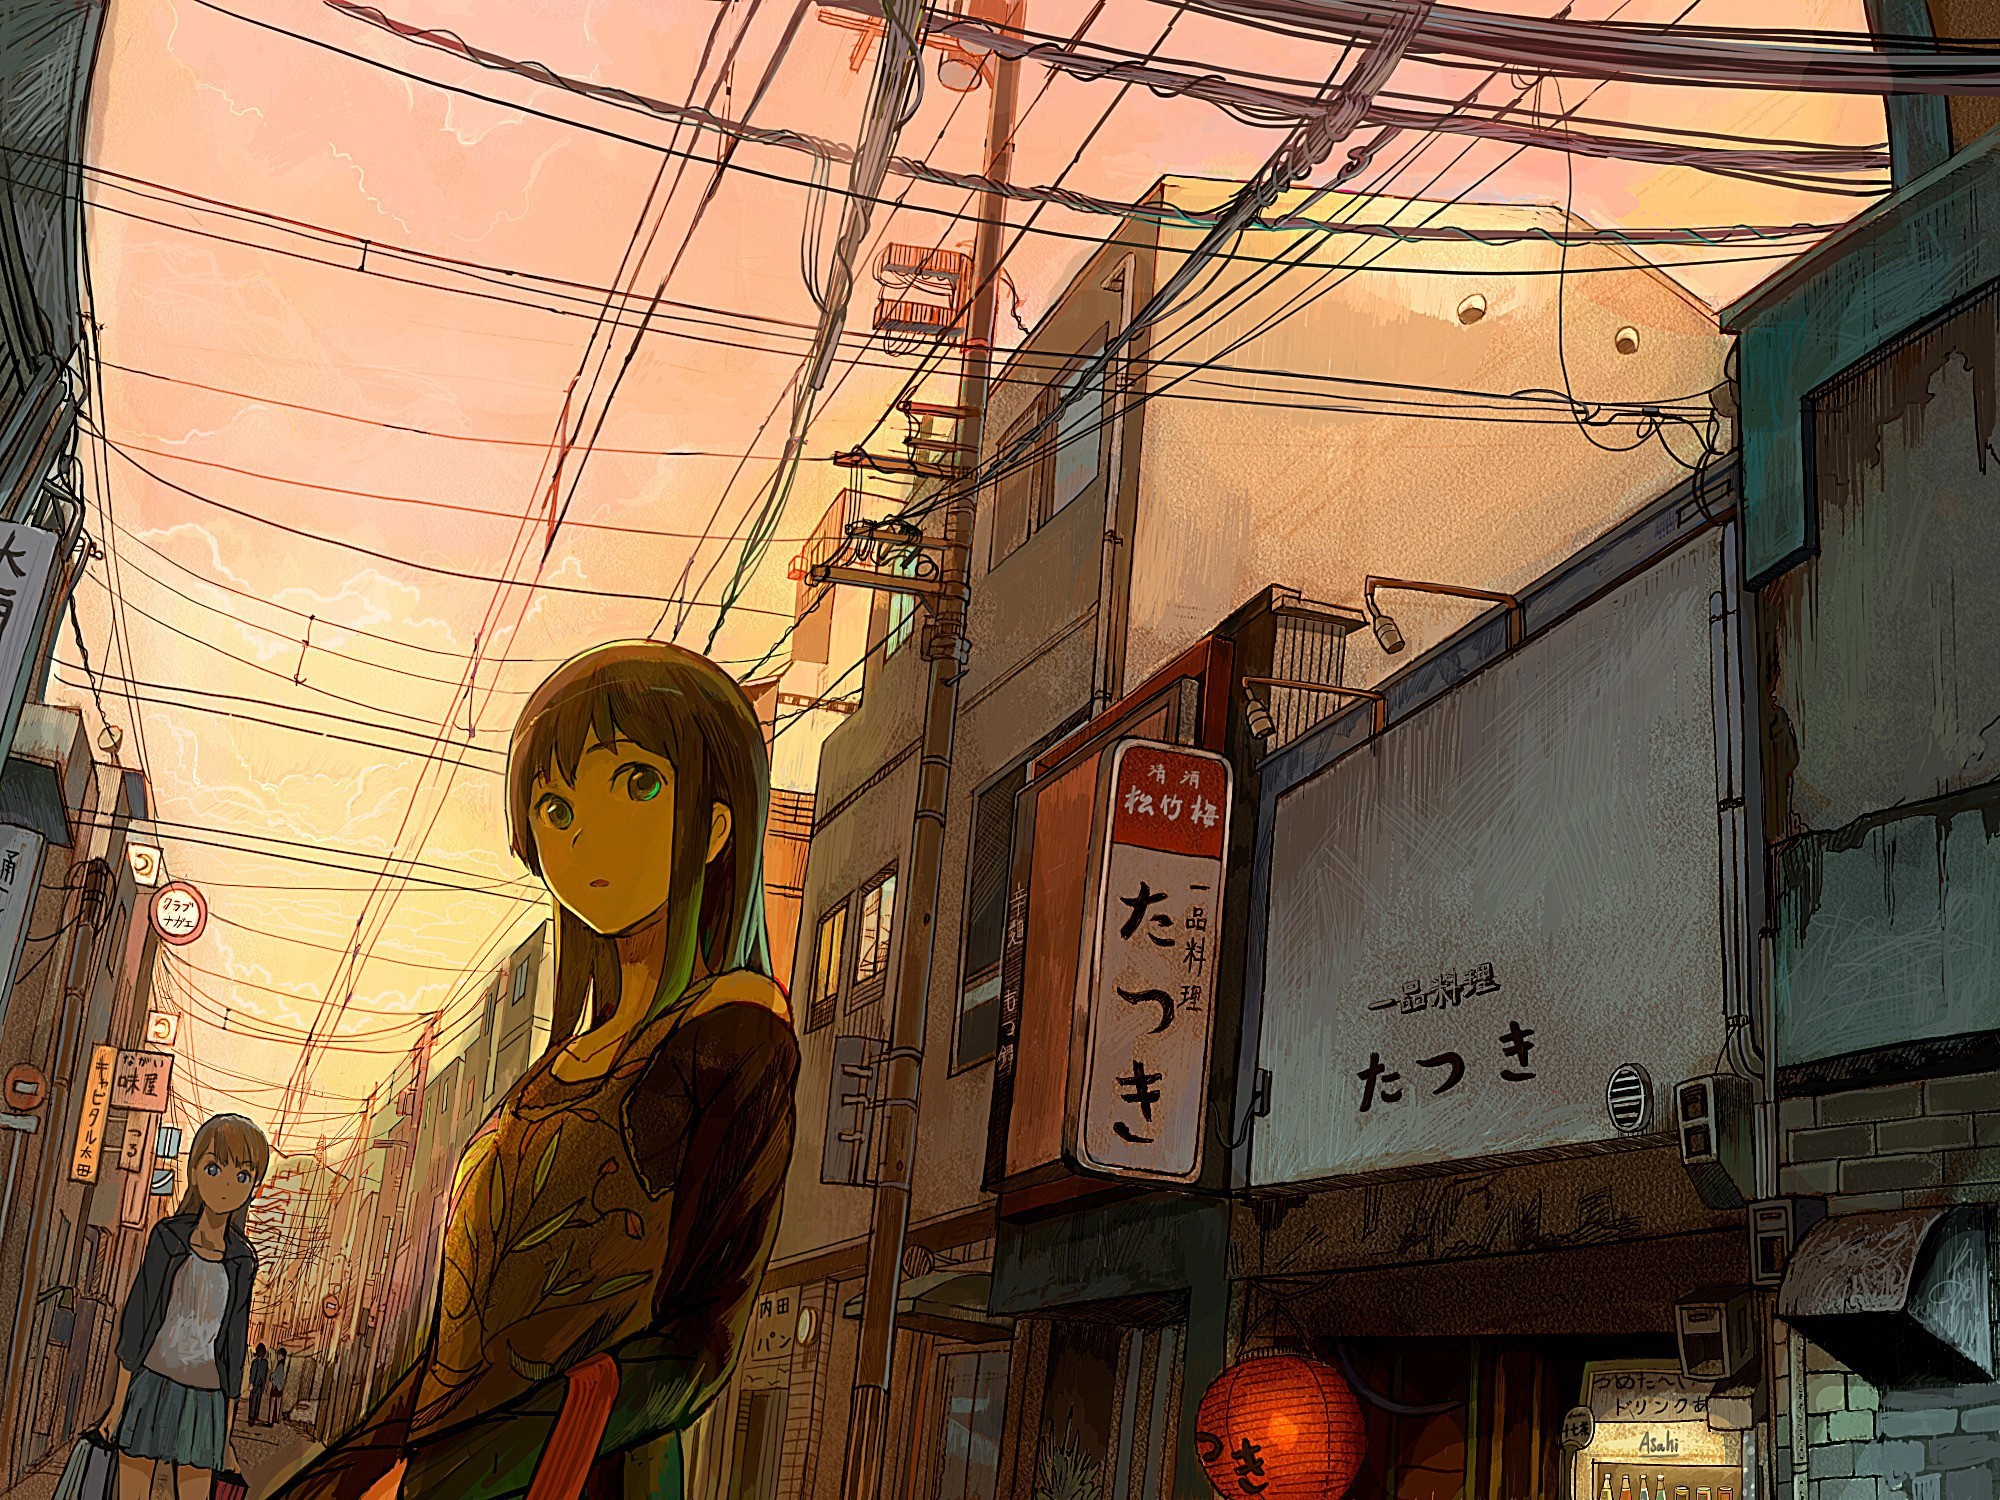 Phone Wallpaper Boy And Girl Sunset Anime Anime City Wallpaper 183 ① Download Free Beautiful Wallpapers